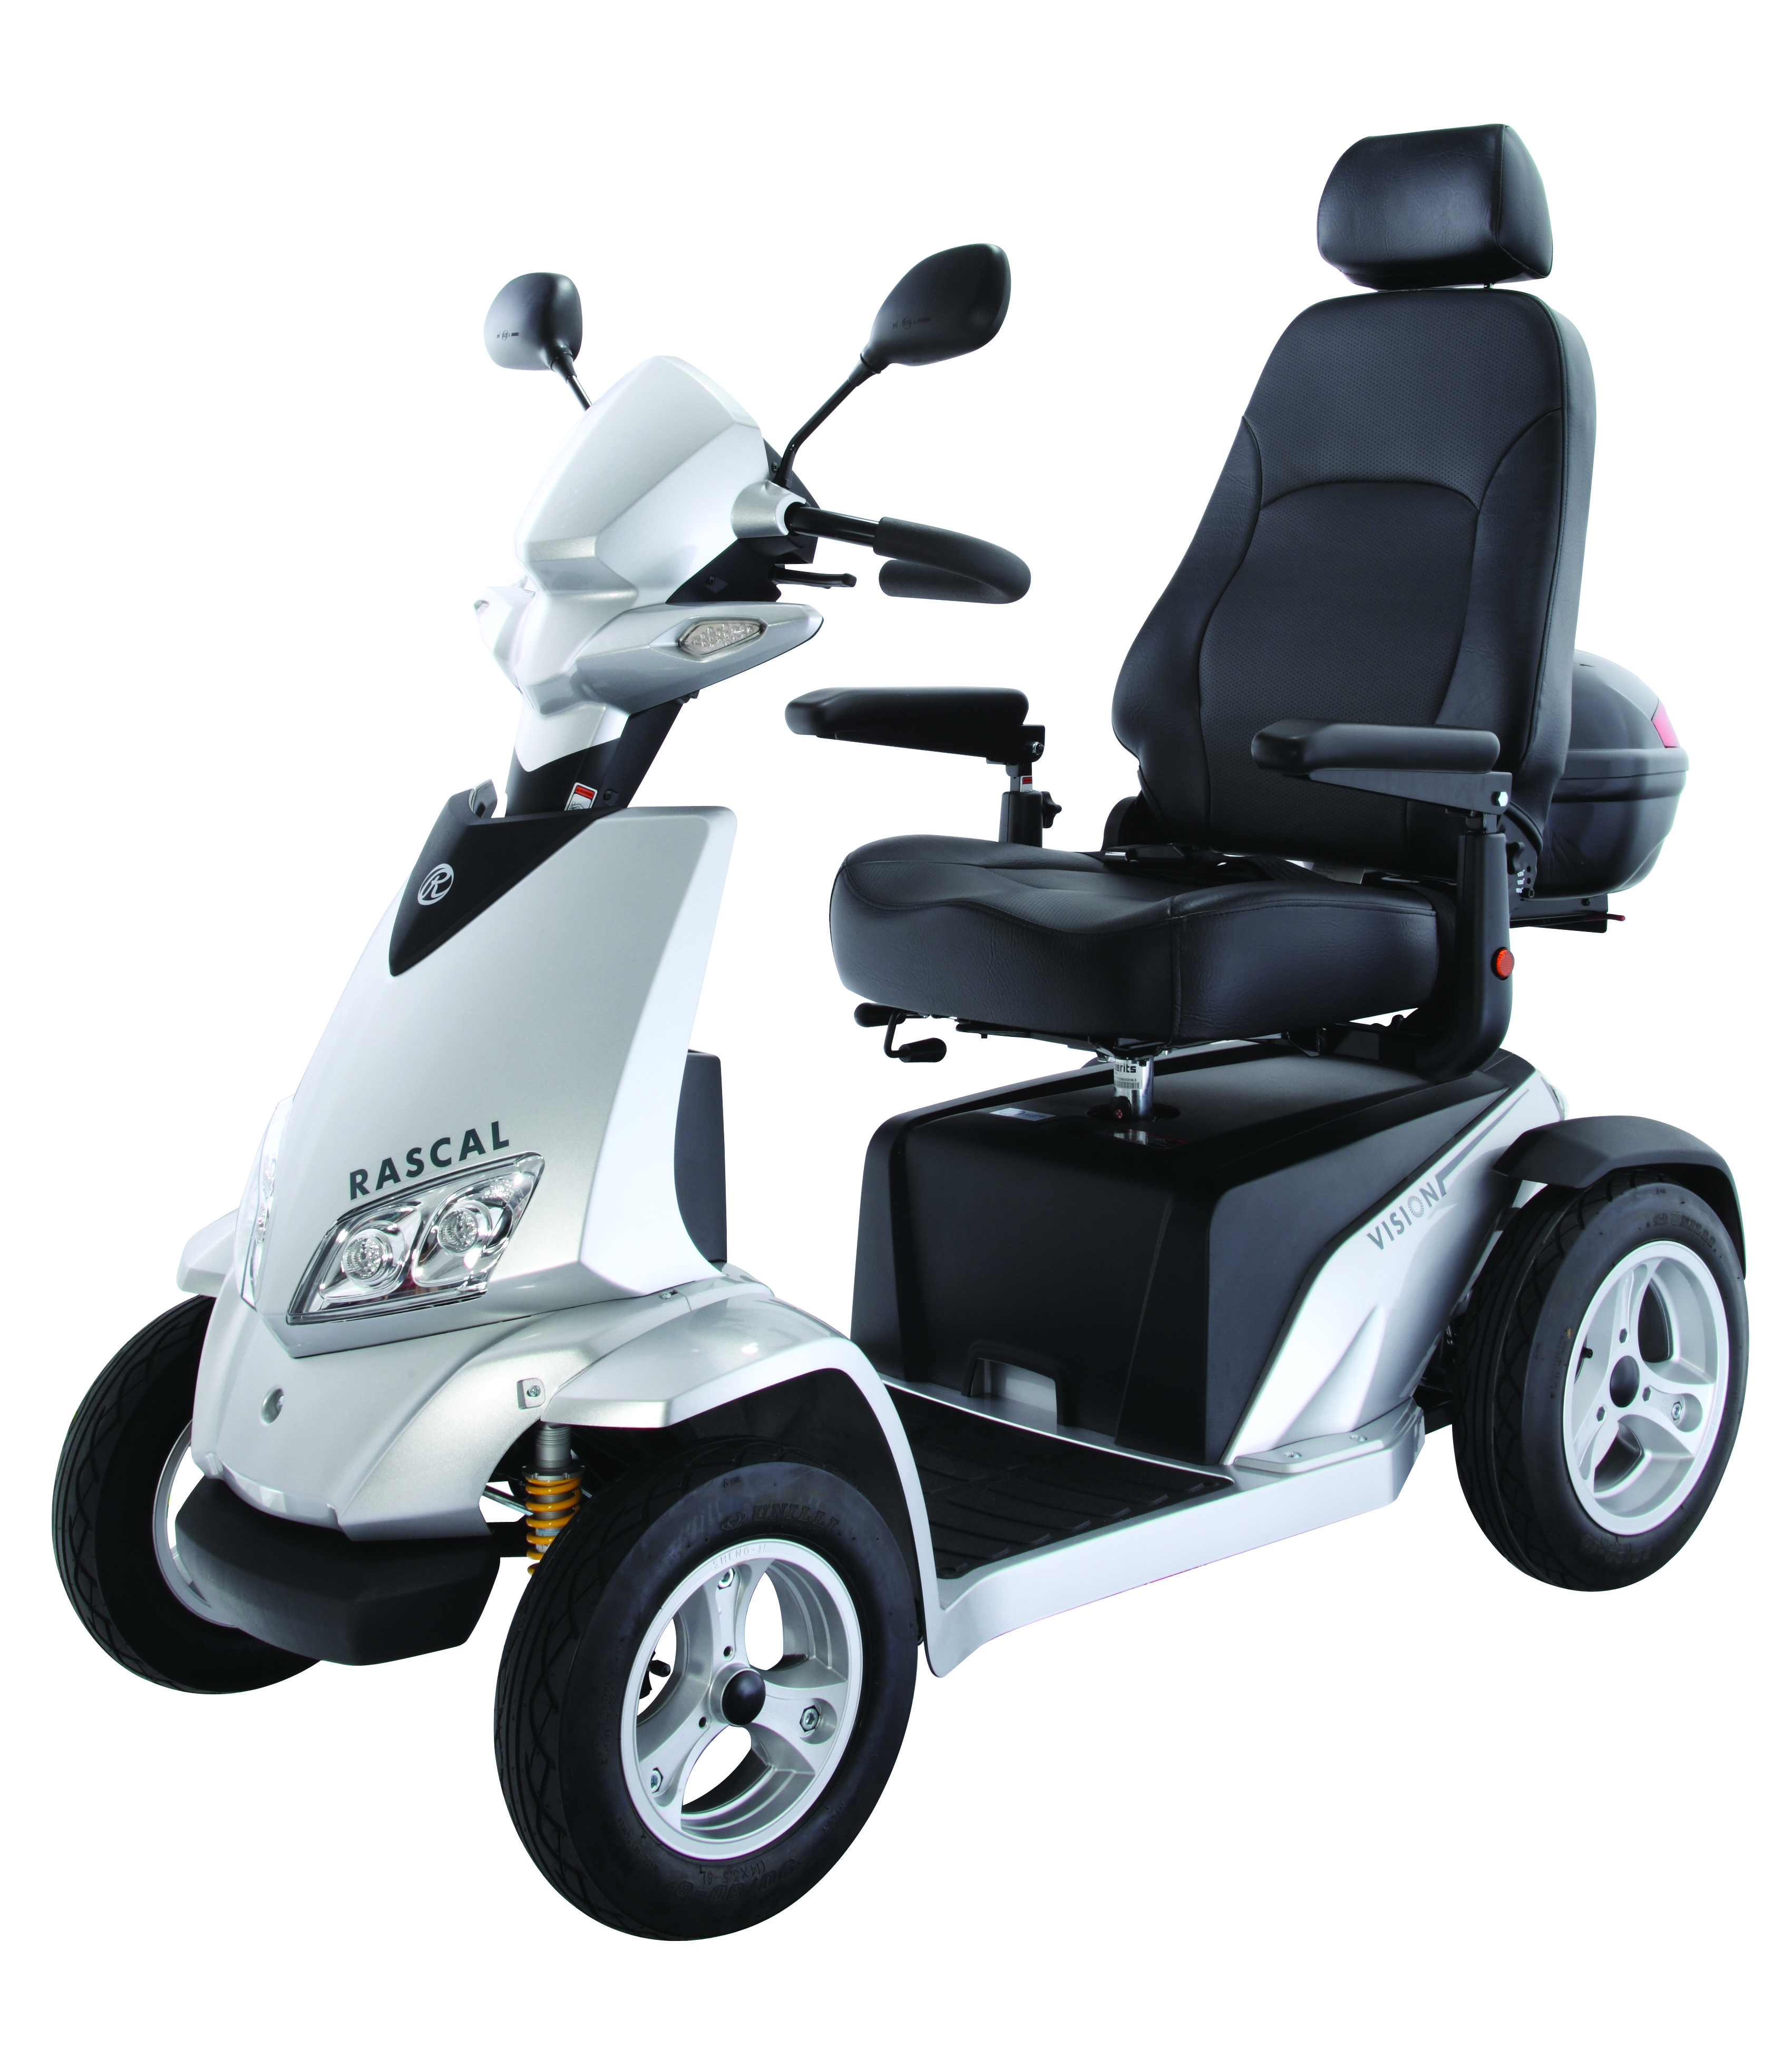 Scooter Elettrico Scooter Elettrico Vision Rascal